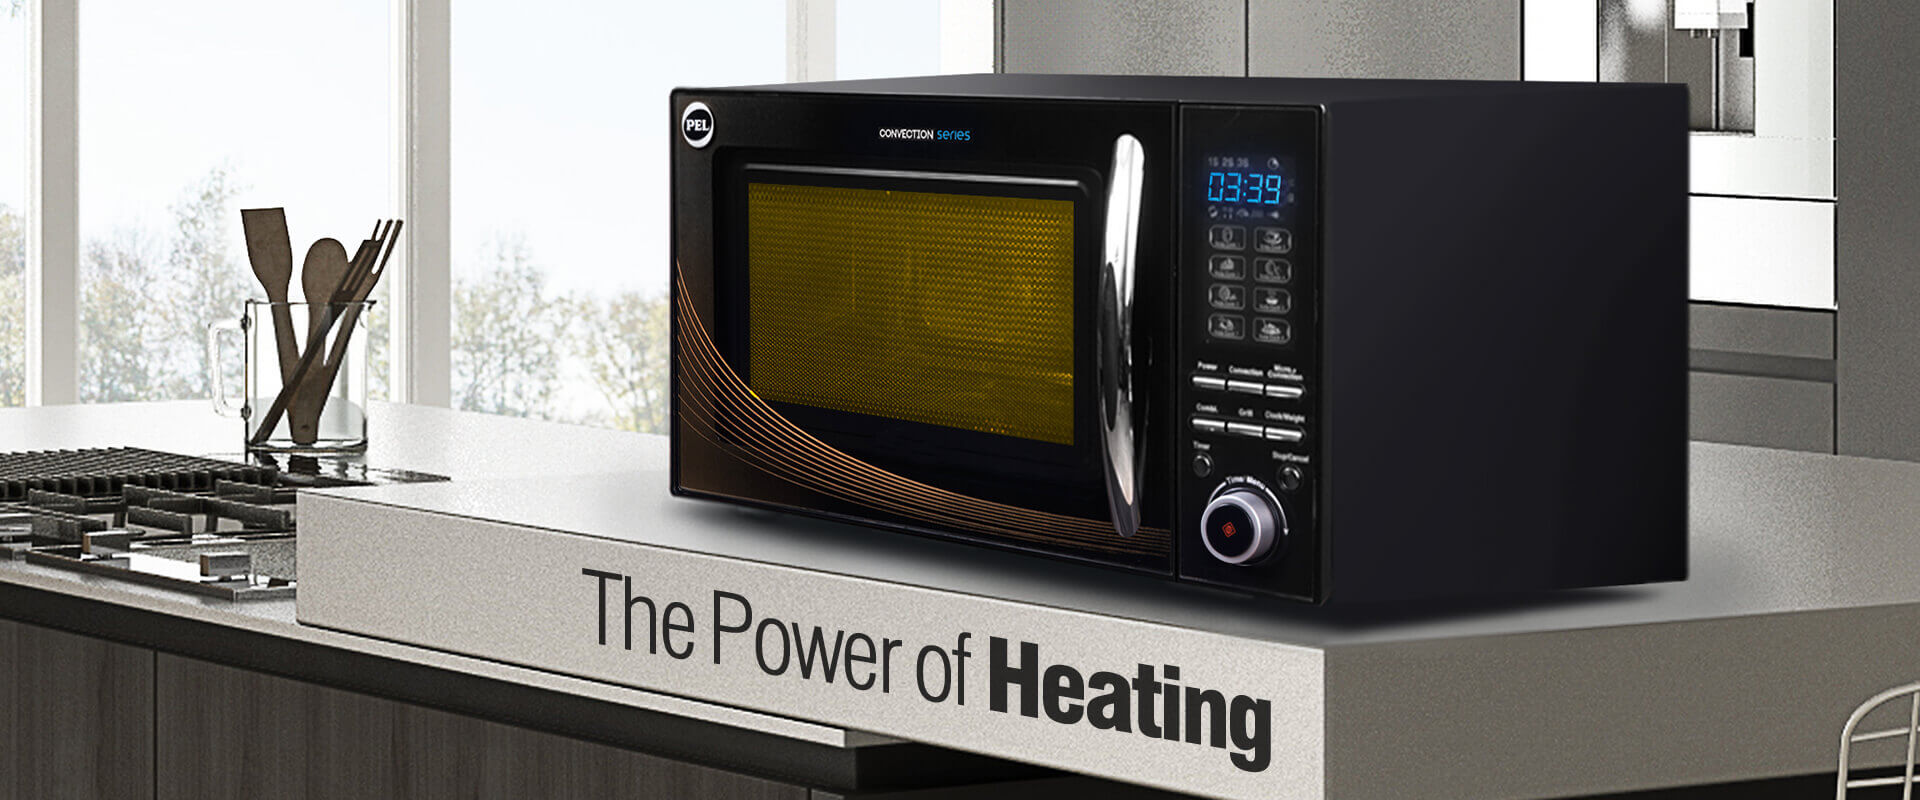 Pel Change Your Life Unleash The Power Of Heating